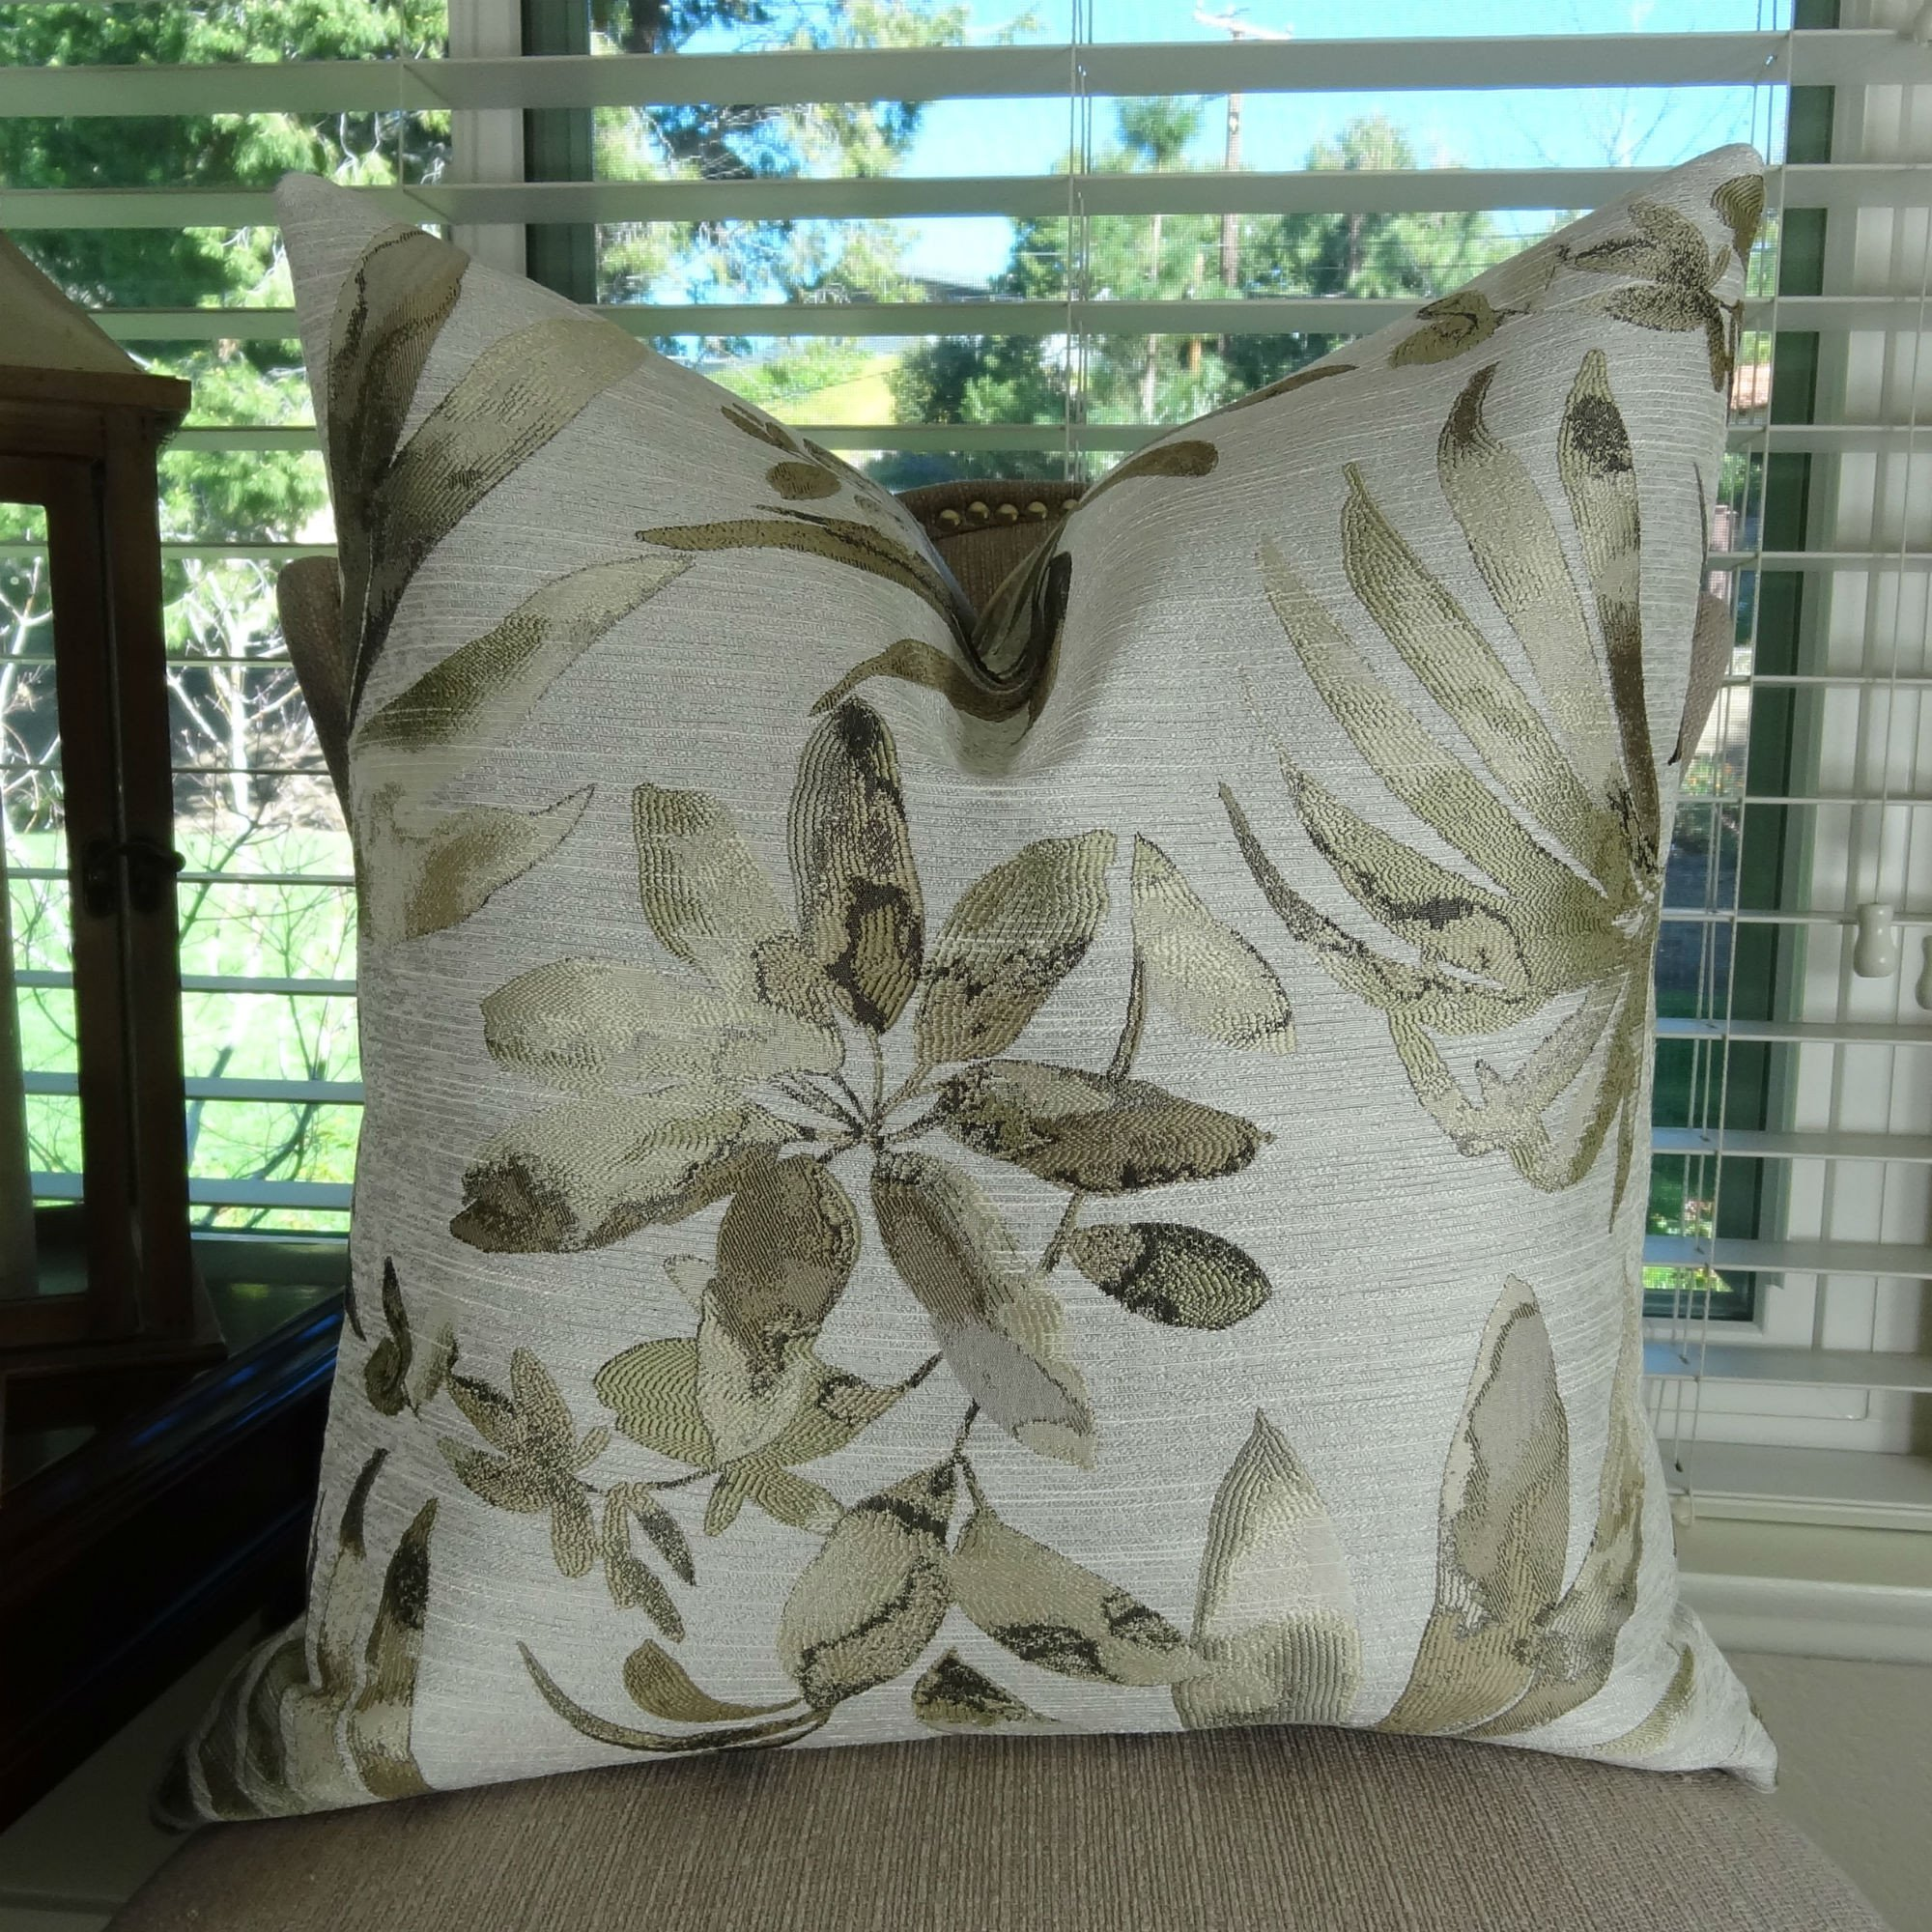 Thomas Collection Floral Throw Pillow, Taupe Pattern Throw Pillow, Designer Floral Accent Pillow, Neutral Pillow, Modern Floral Pillow, COVER ONLY, NO INSERT, Made in America, 11404